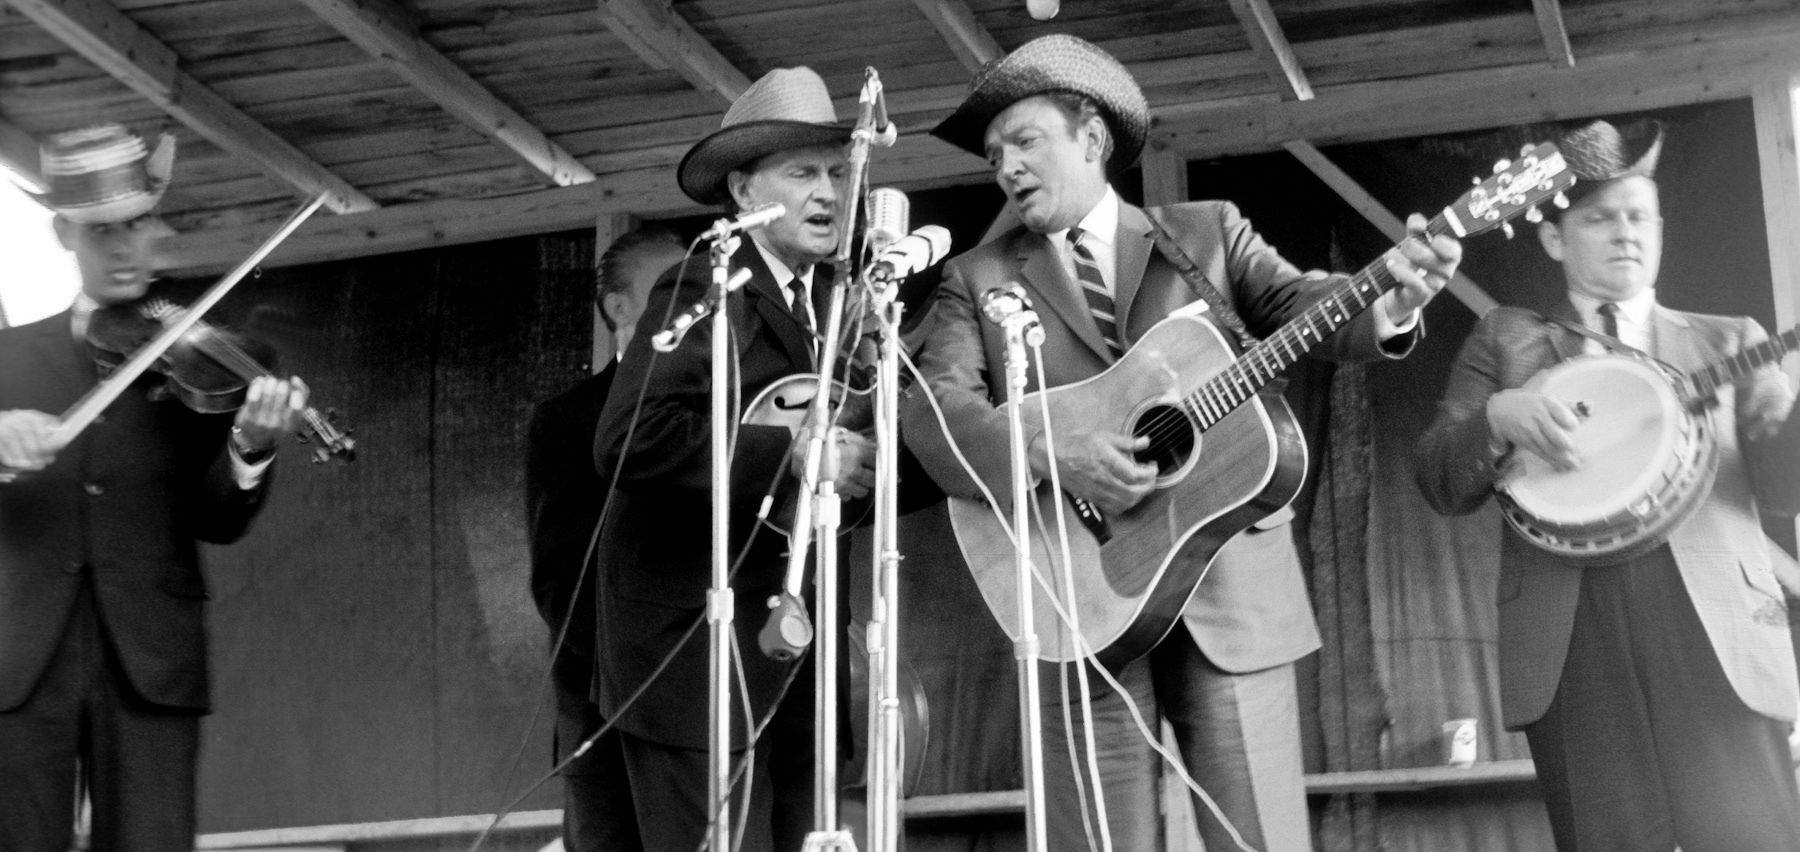 Bill Monroe and Carter Stanley at Roanoke Va, 1965